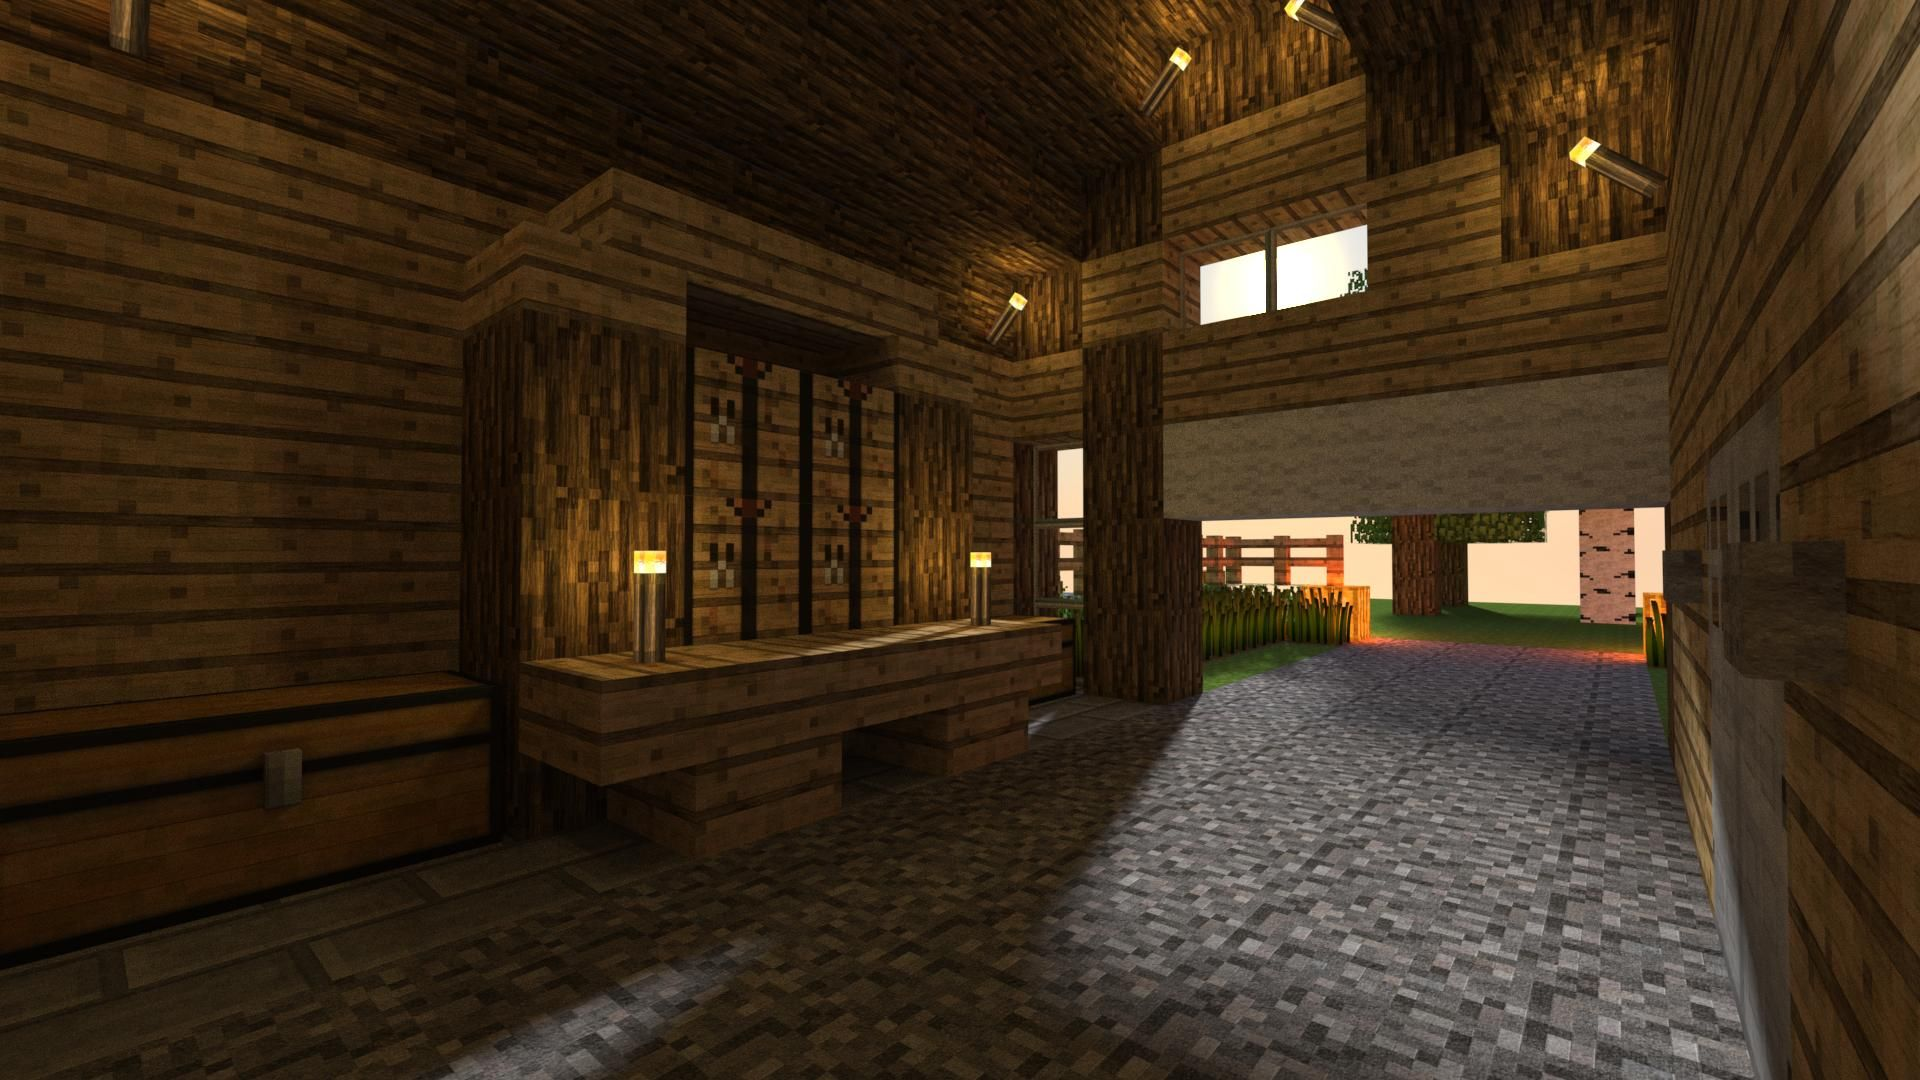 The Best Minecraft Skins Garage Design Minecraft House Designs